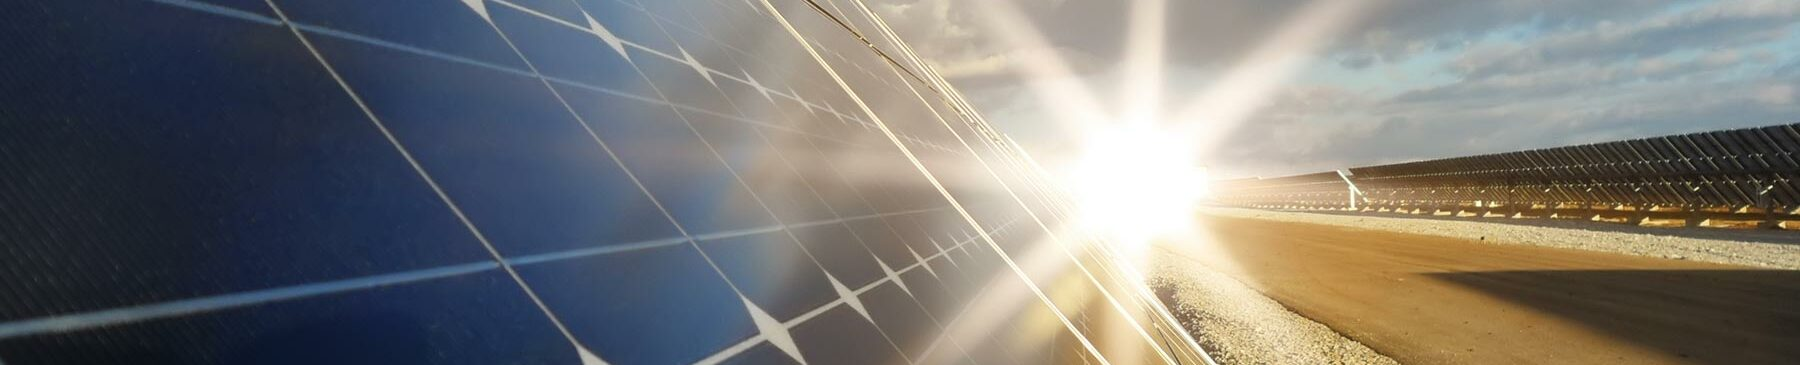 sustainable energy renewable energy solar